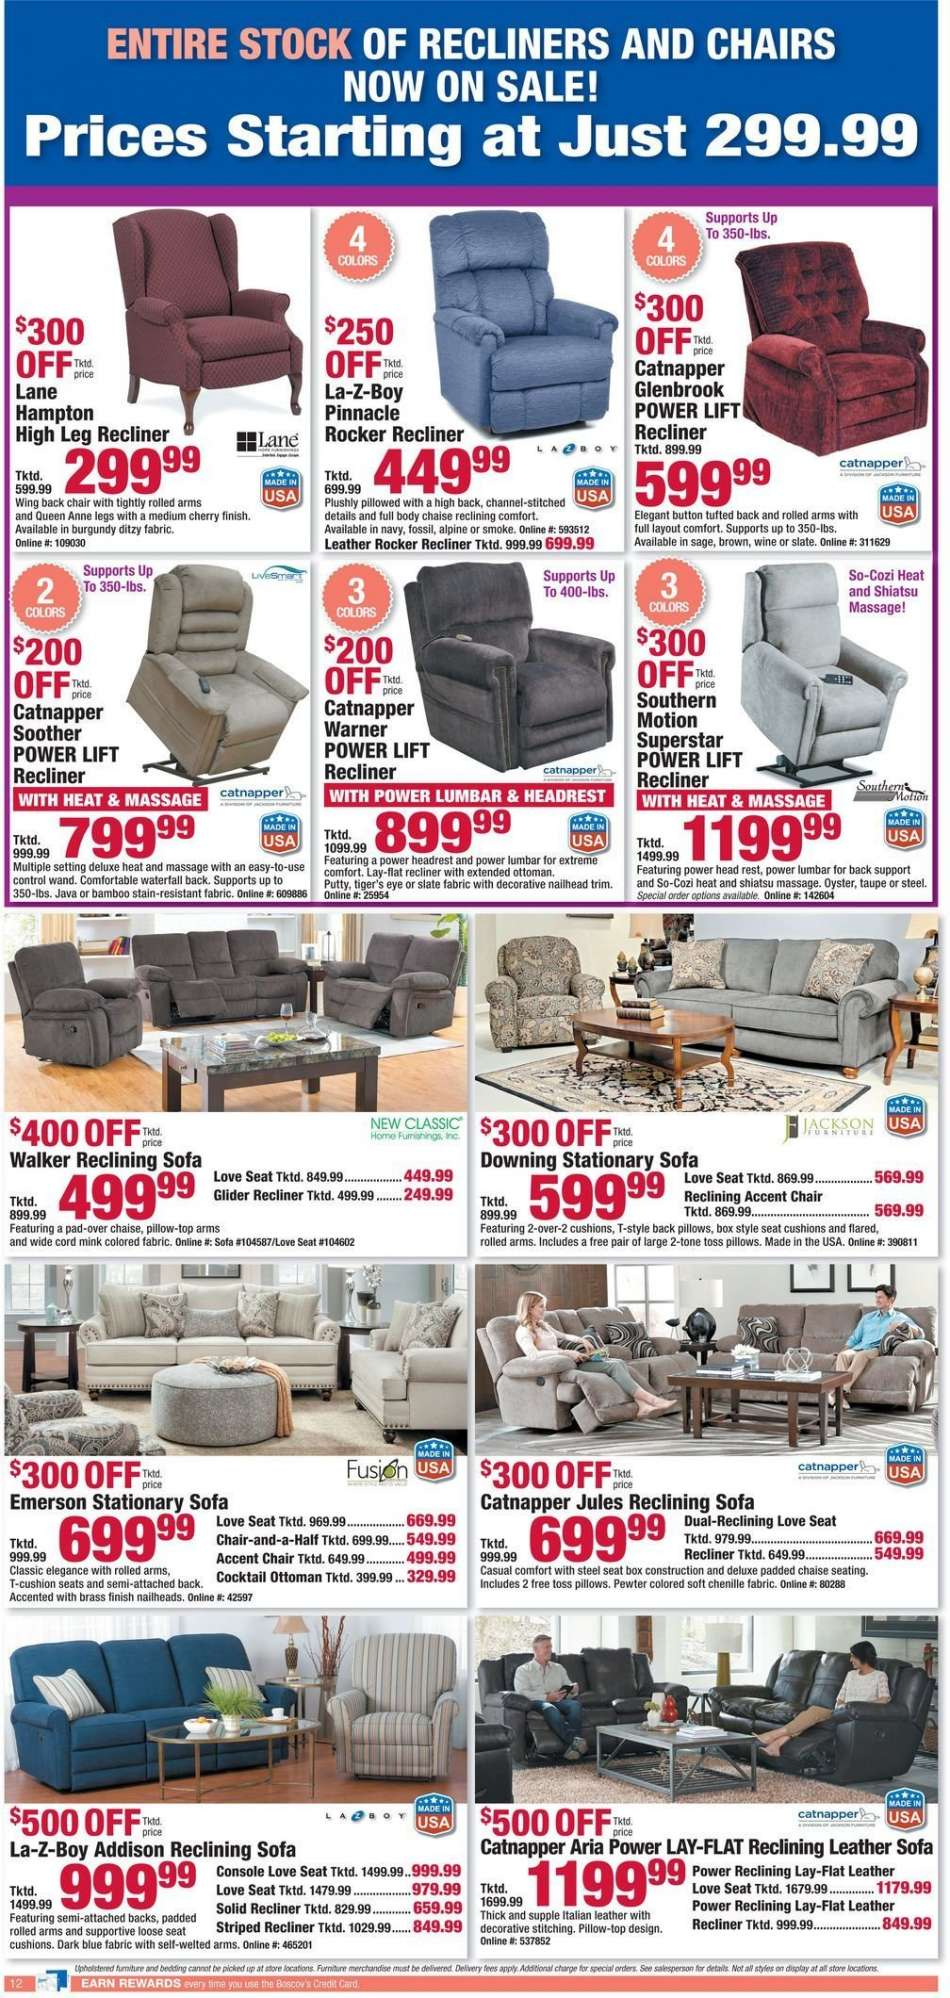 Enjoyable Boscovs Flyer 02 24 2019 03 03 2019 Weekly Ads Us Gmtry Best Dining Table And Chair Ideas Images Gmtryco